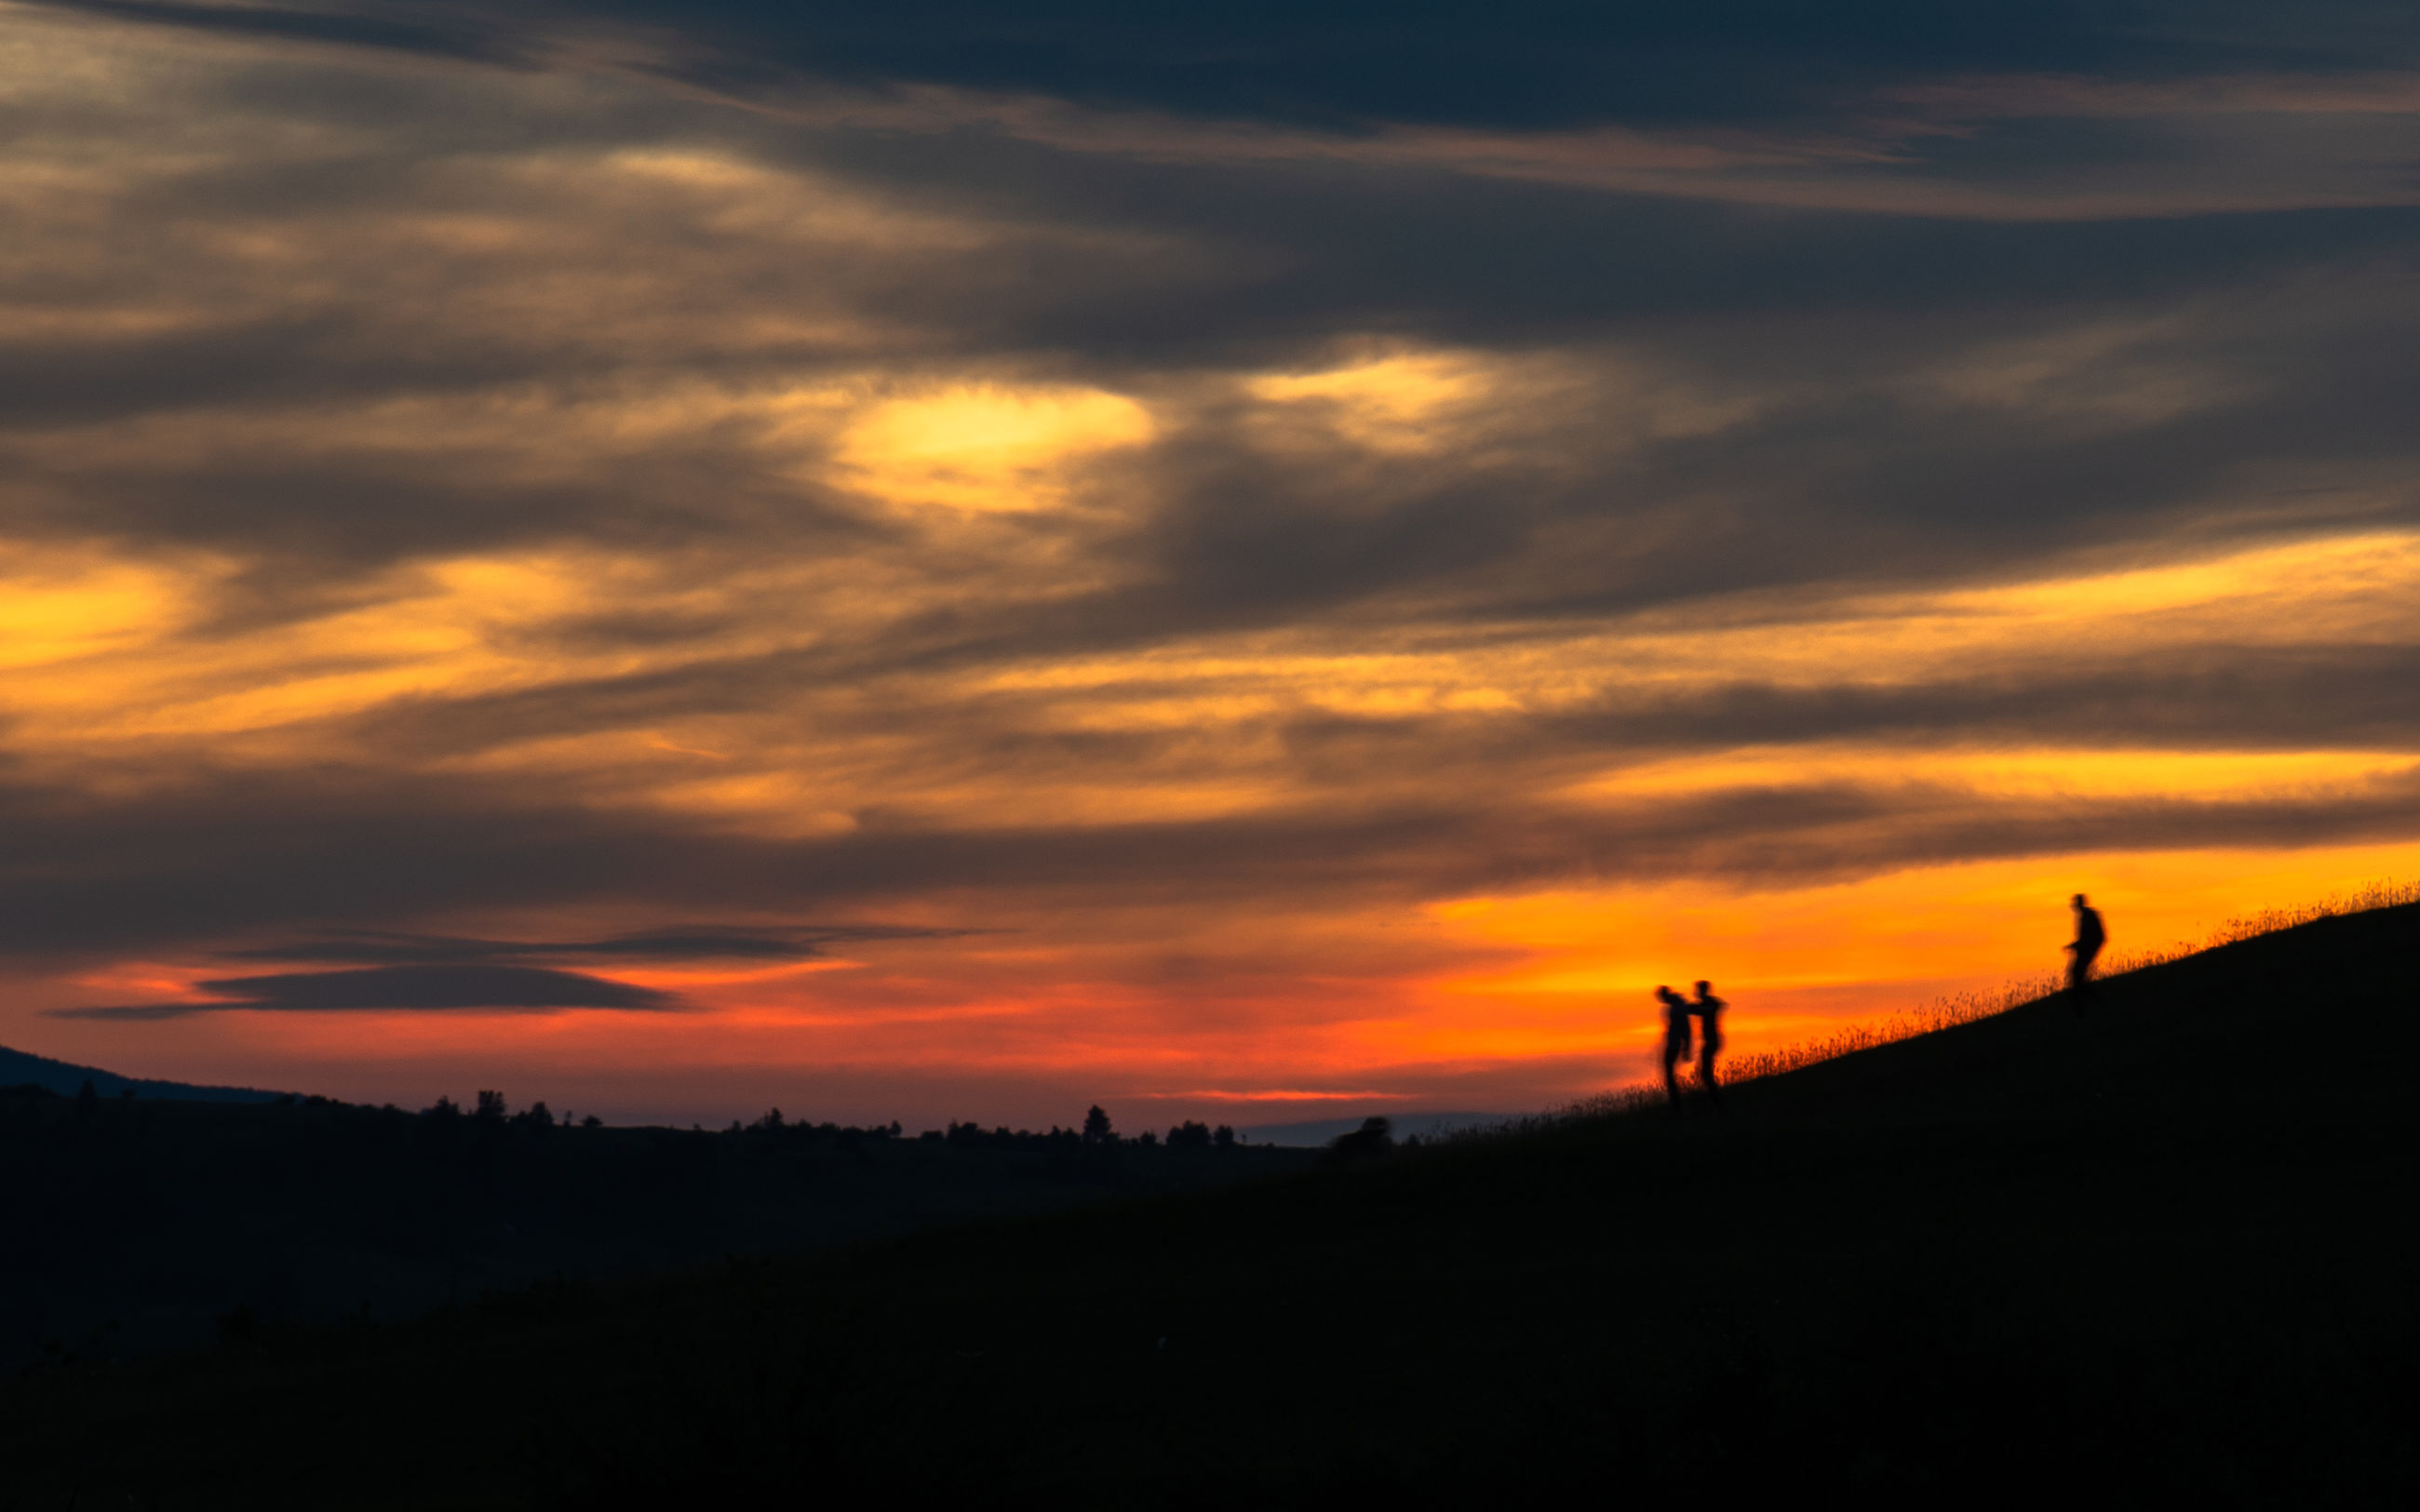 SILHOUETTE PEOPLE ON LAND DURING SUNSET